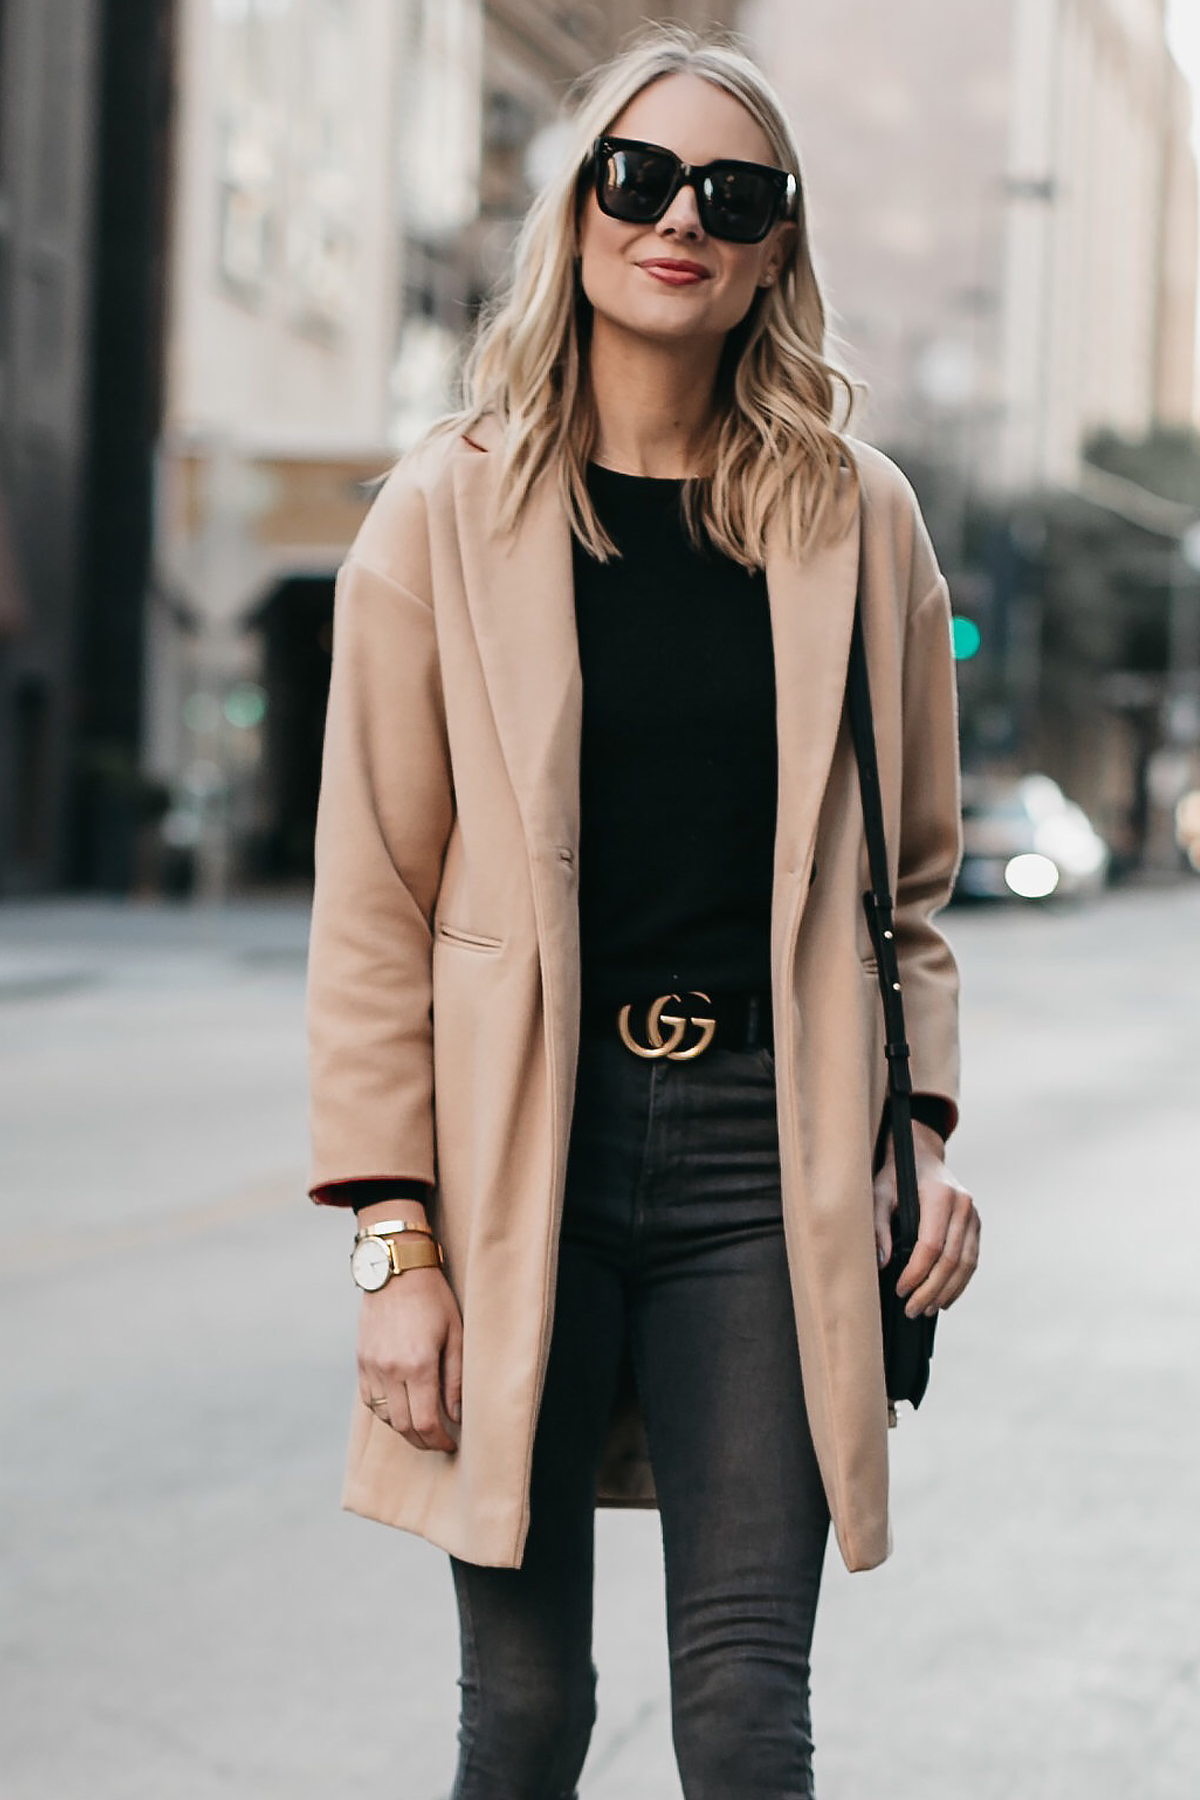 Fashion Trend So, You're Wearing a Belt on Sweater and Coat Now